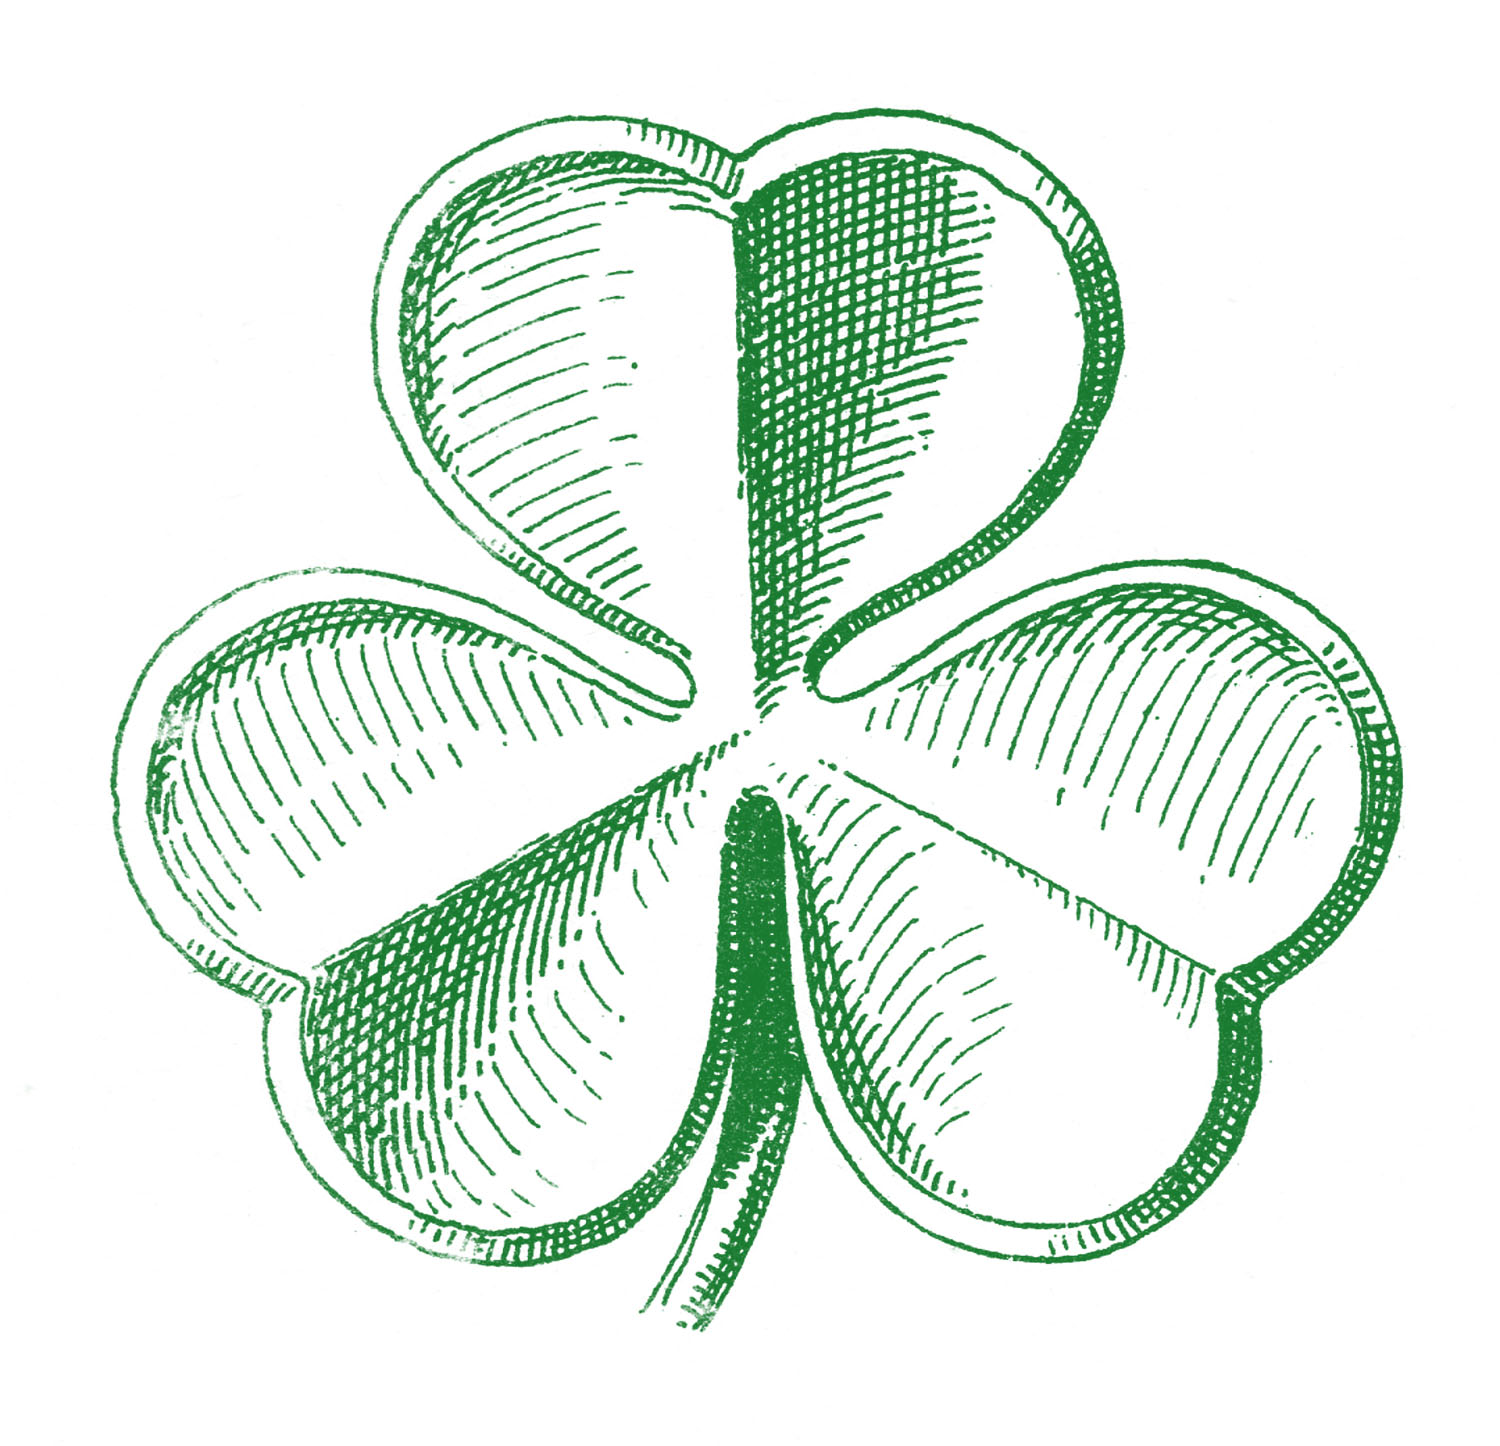 6 Clover Shamrock Images! - The Graphics Fairy